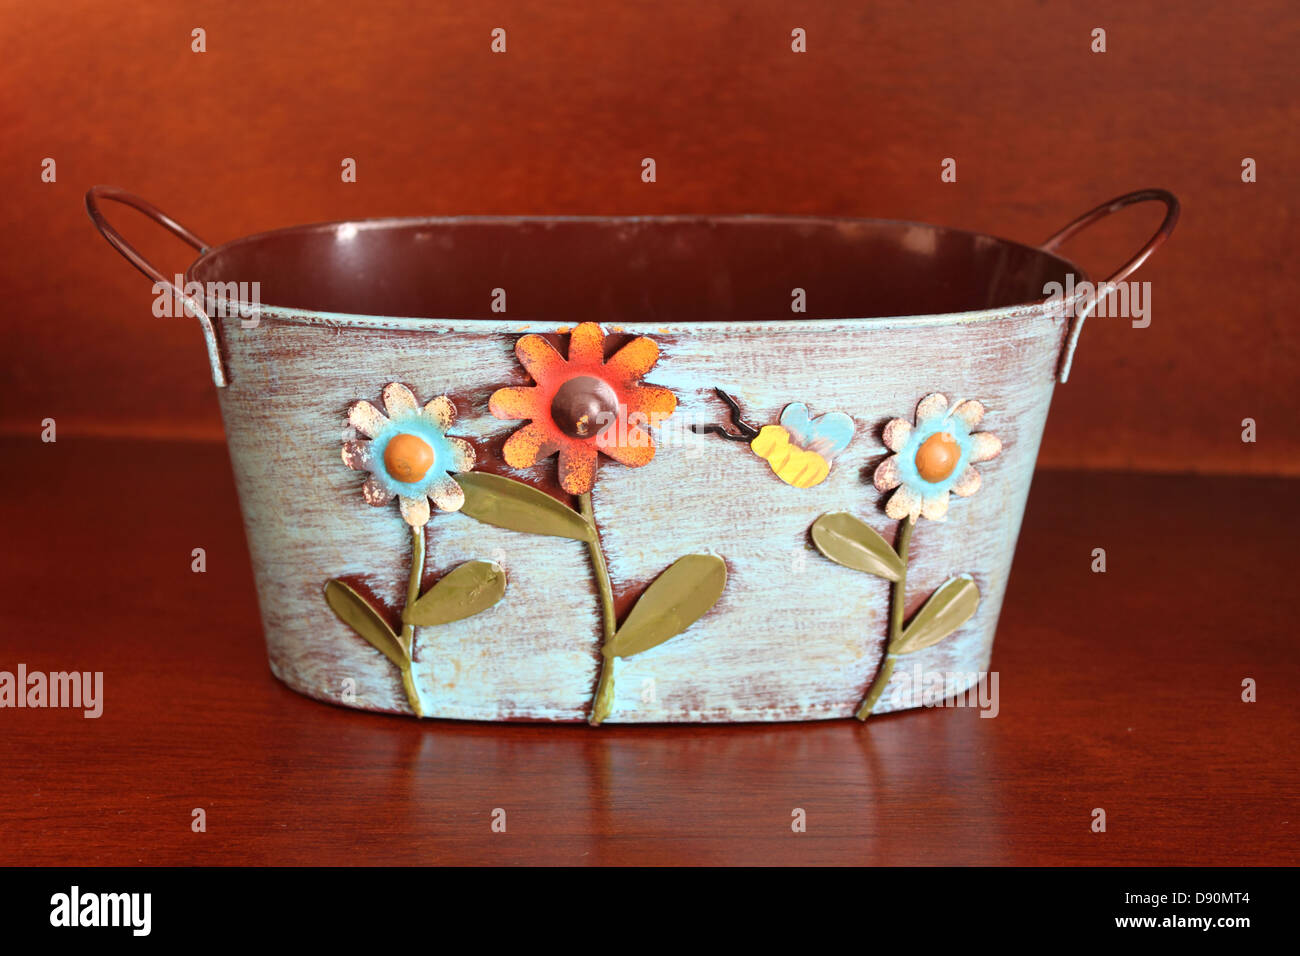 Decorated metal basket for flowers - Stock Image